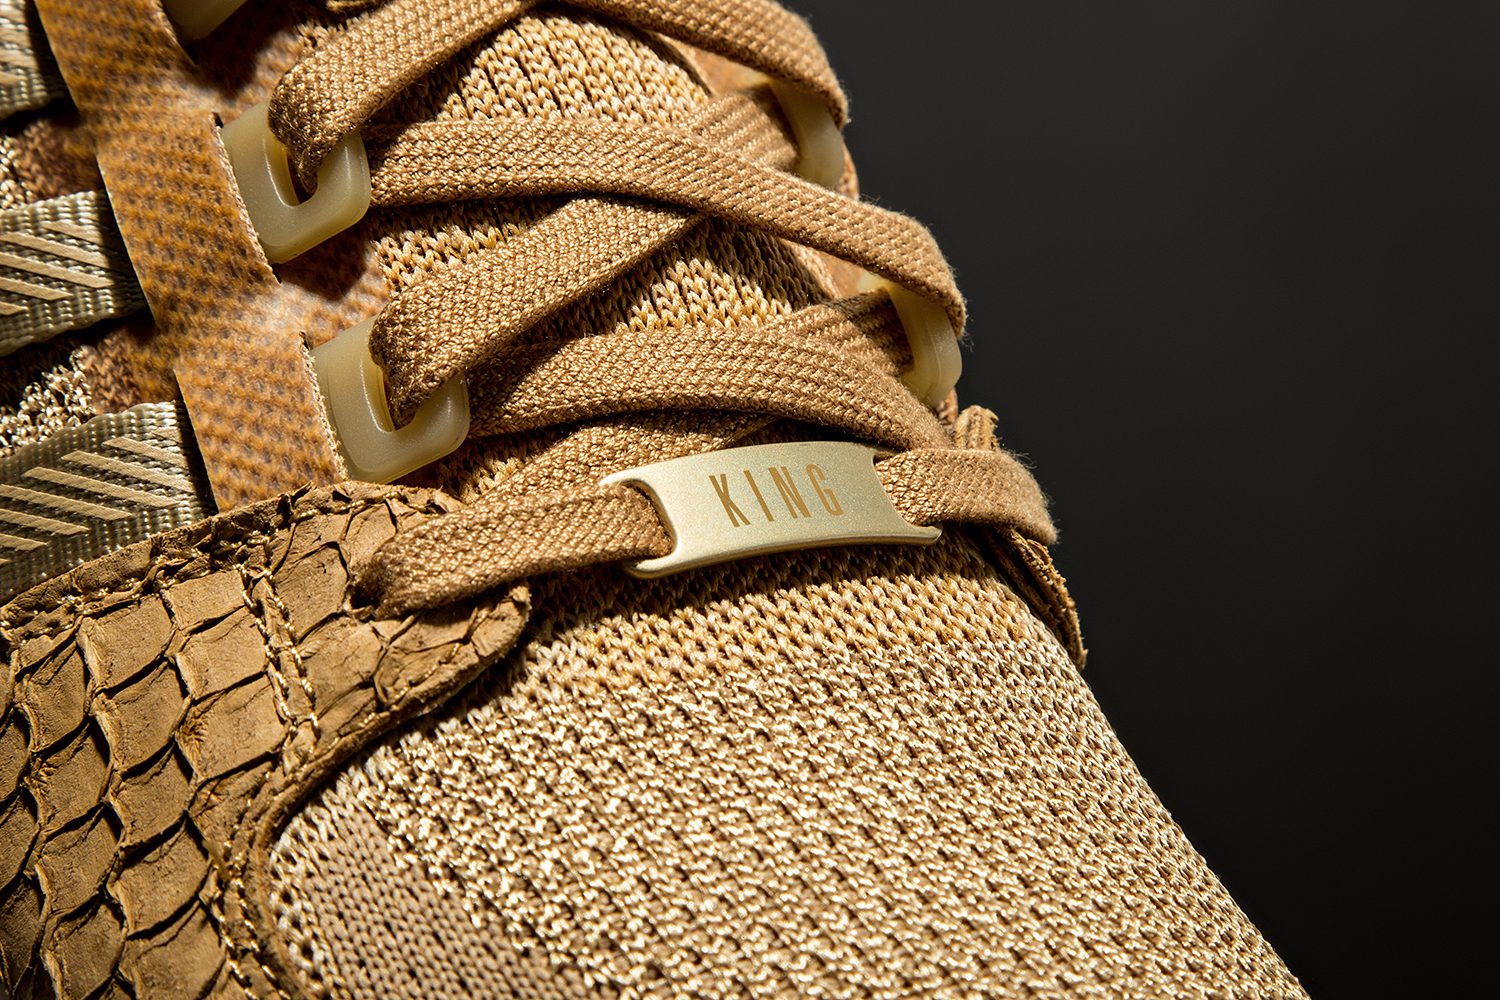 adidas x King Push_by Kev Foster for Philip Browne-5.jpg